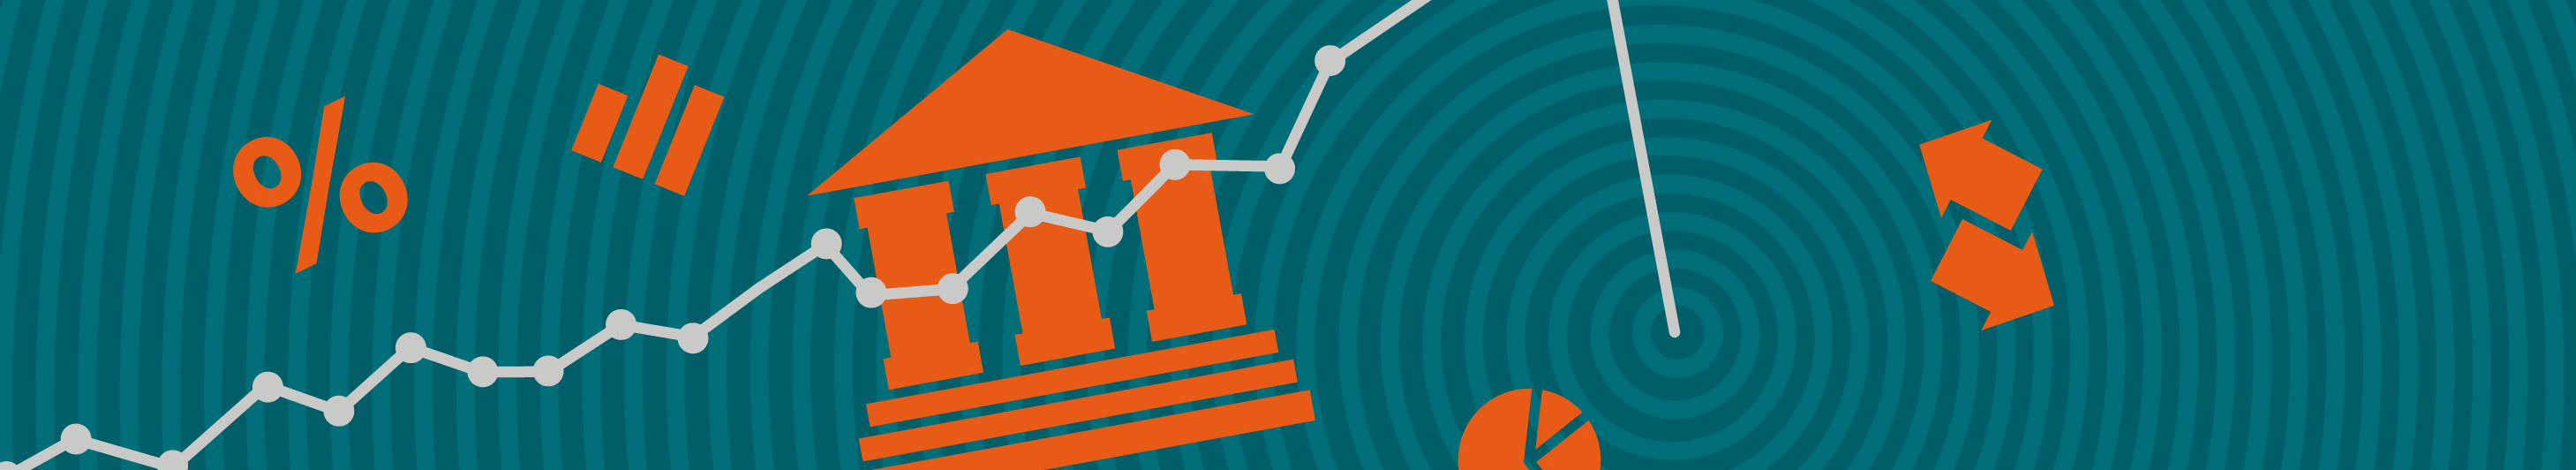 illustration of a volatile graph on a turquoise background with orange iconography